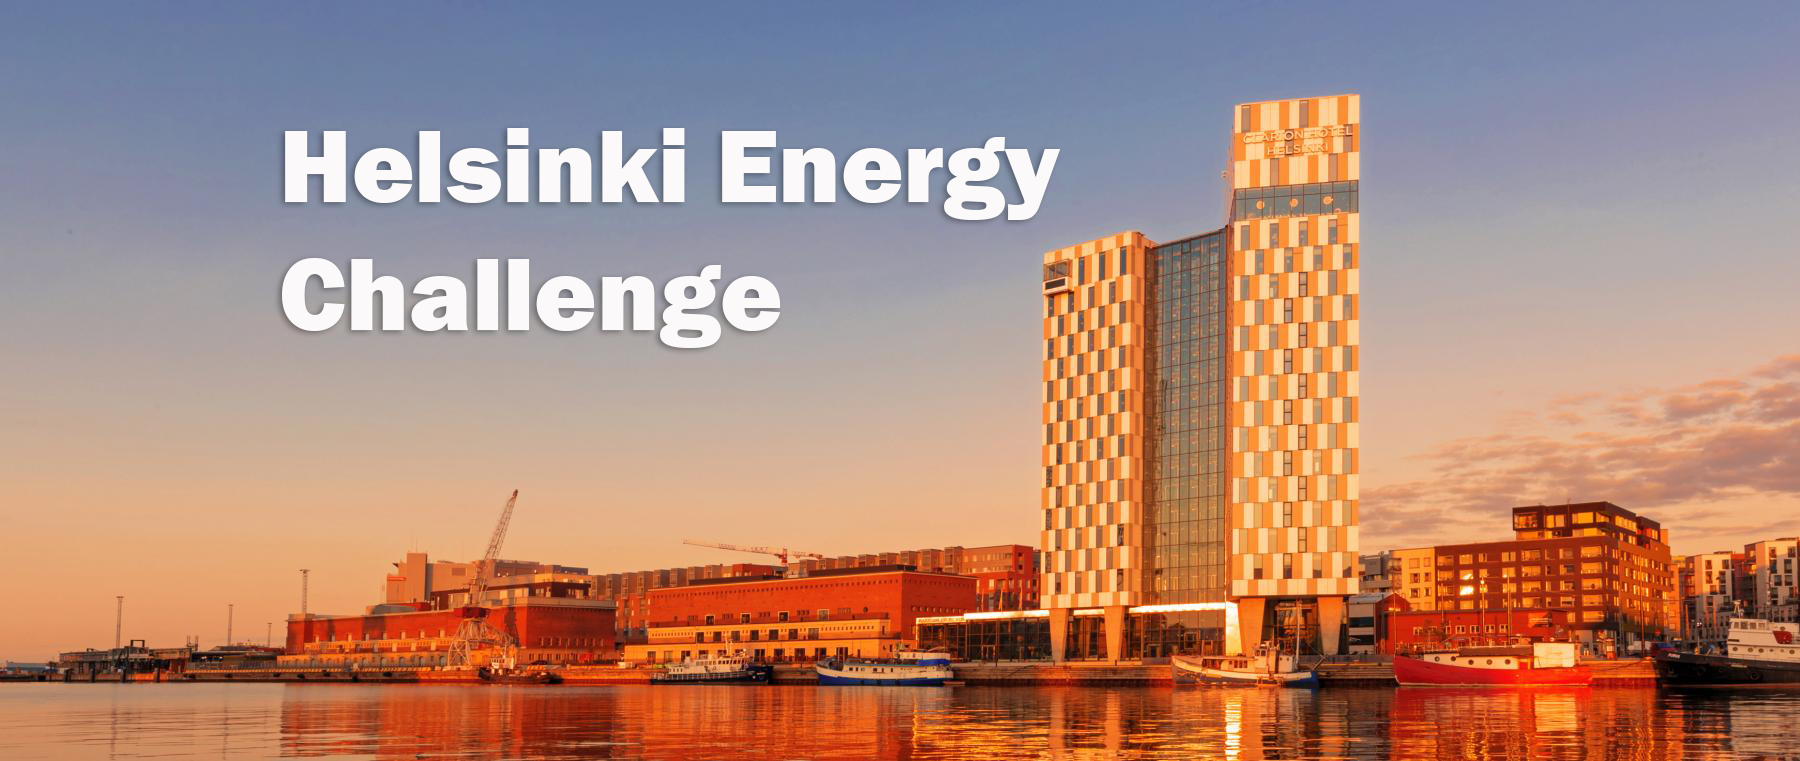 Helsinki searches sustainable city heating solutions: Global one million euro challenge competition launches today